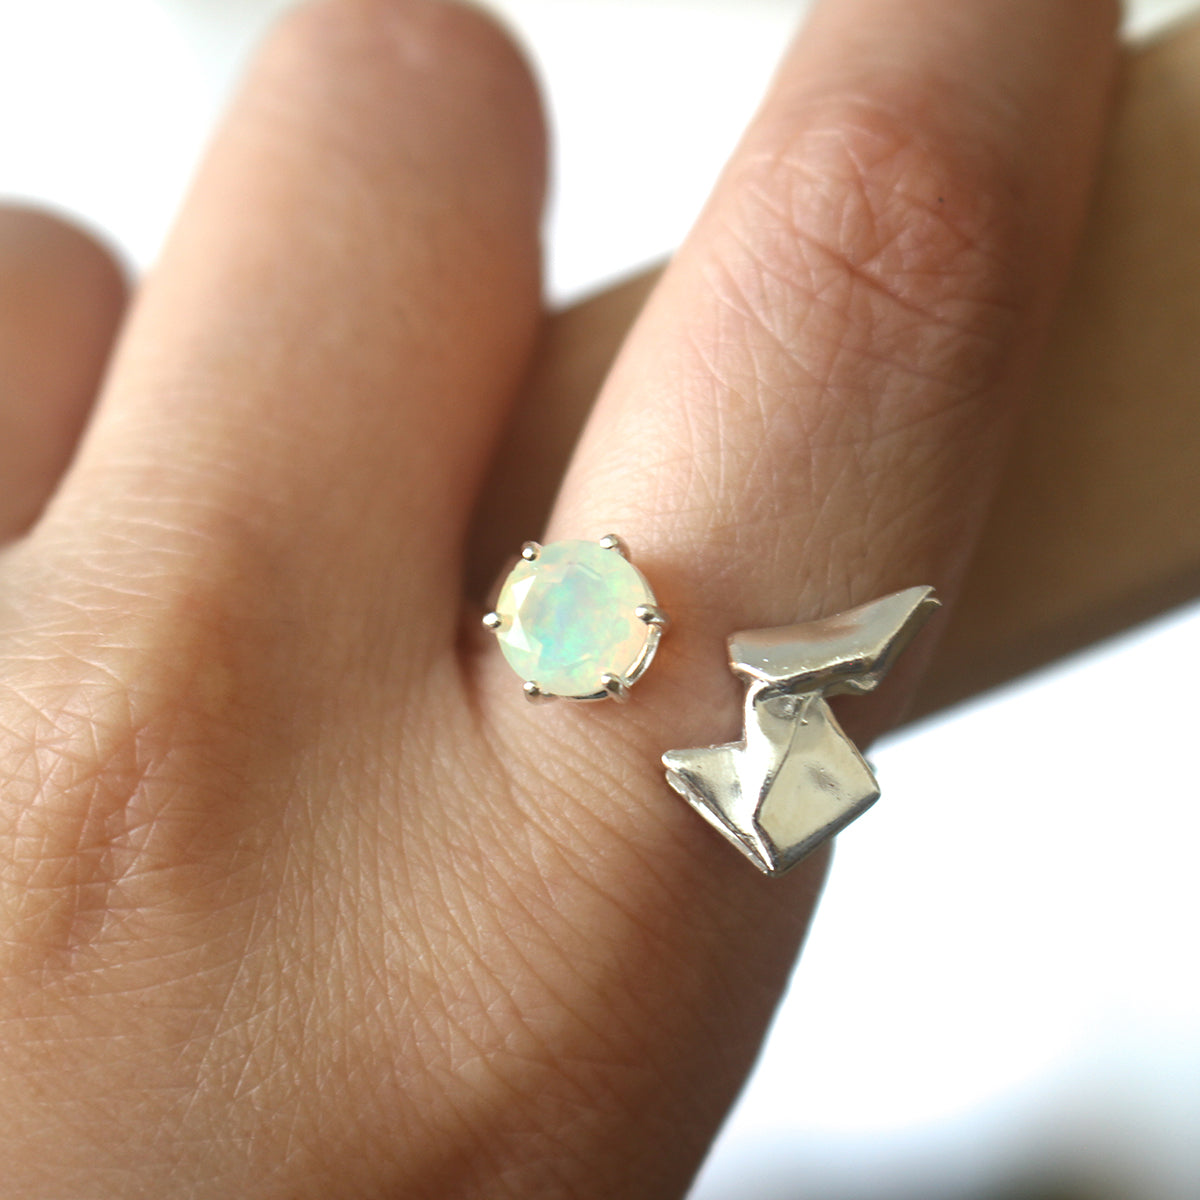 Rabbit and the Moon - 925 Silver Origami Rabbit Fire Opal Ring